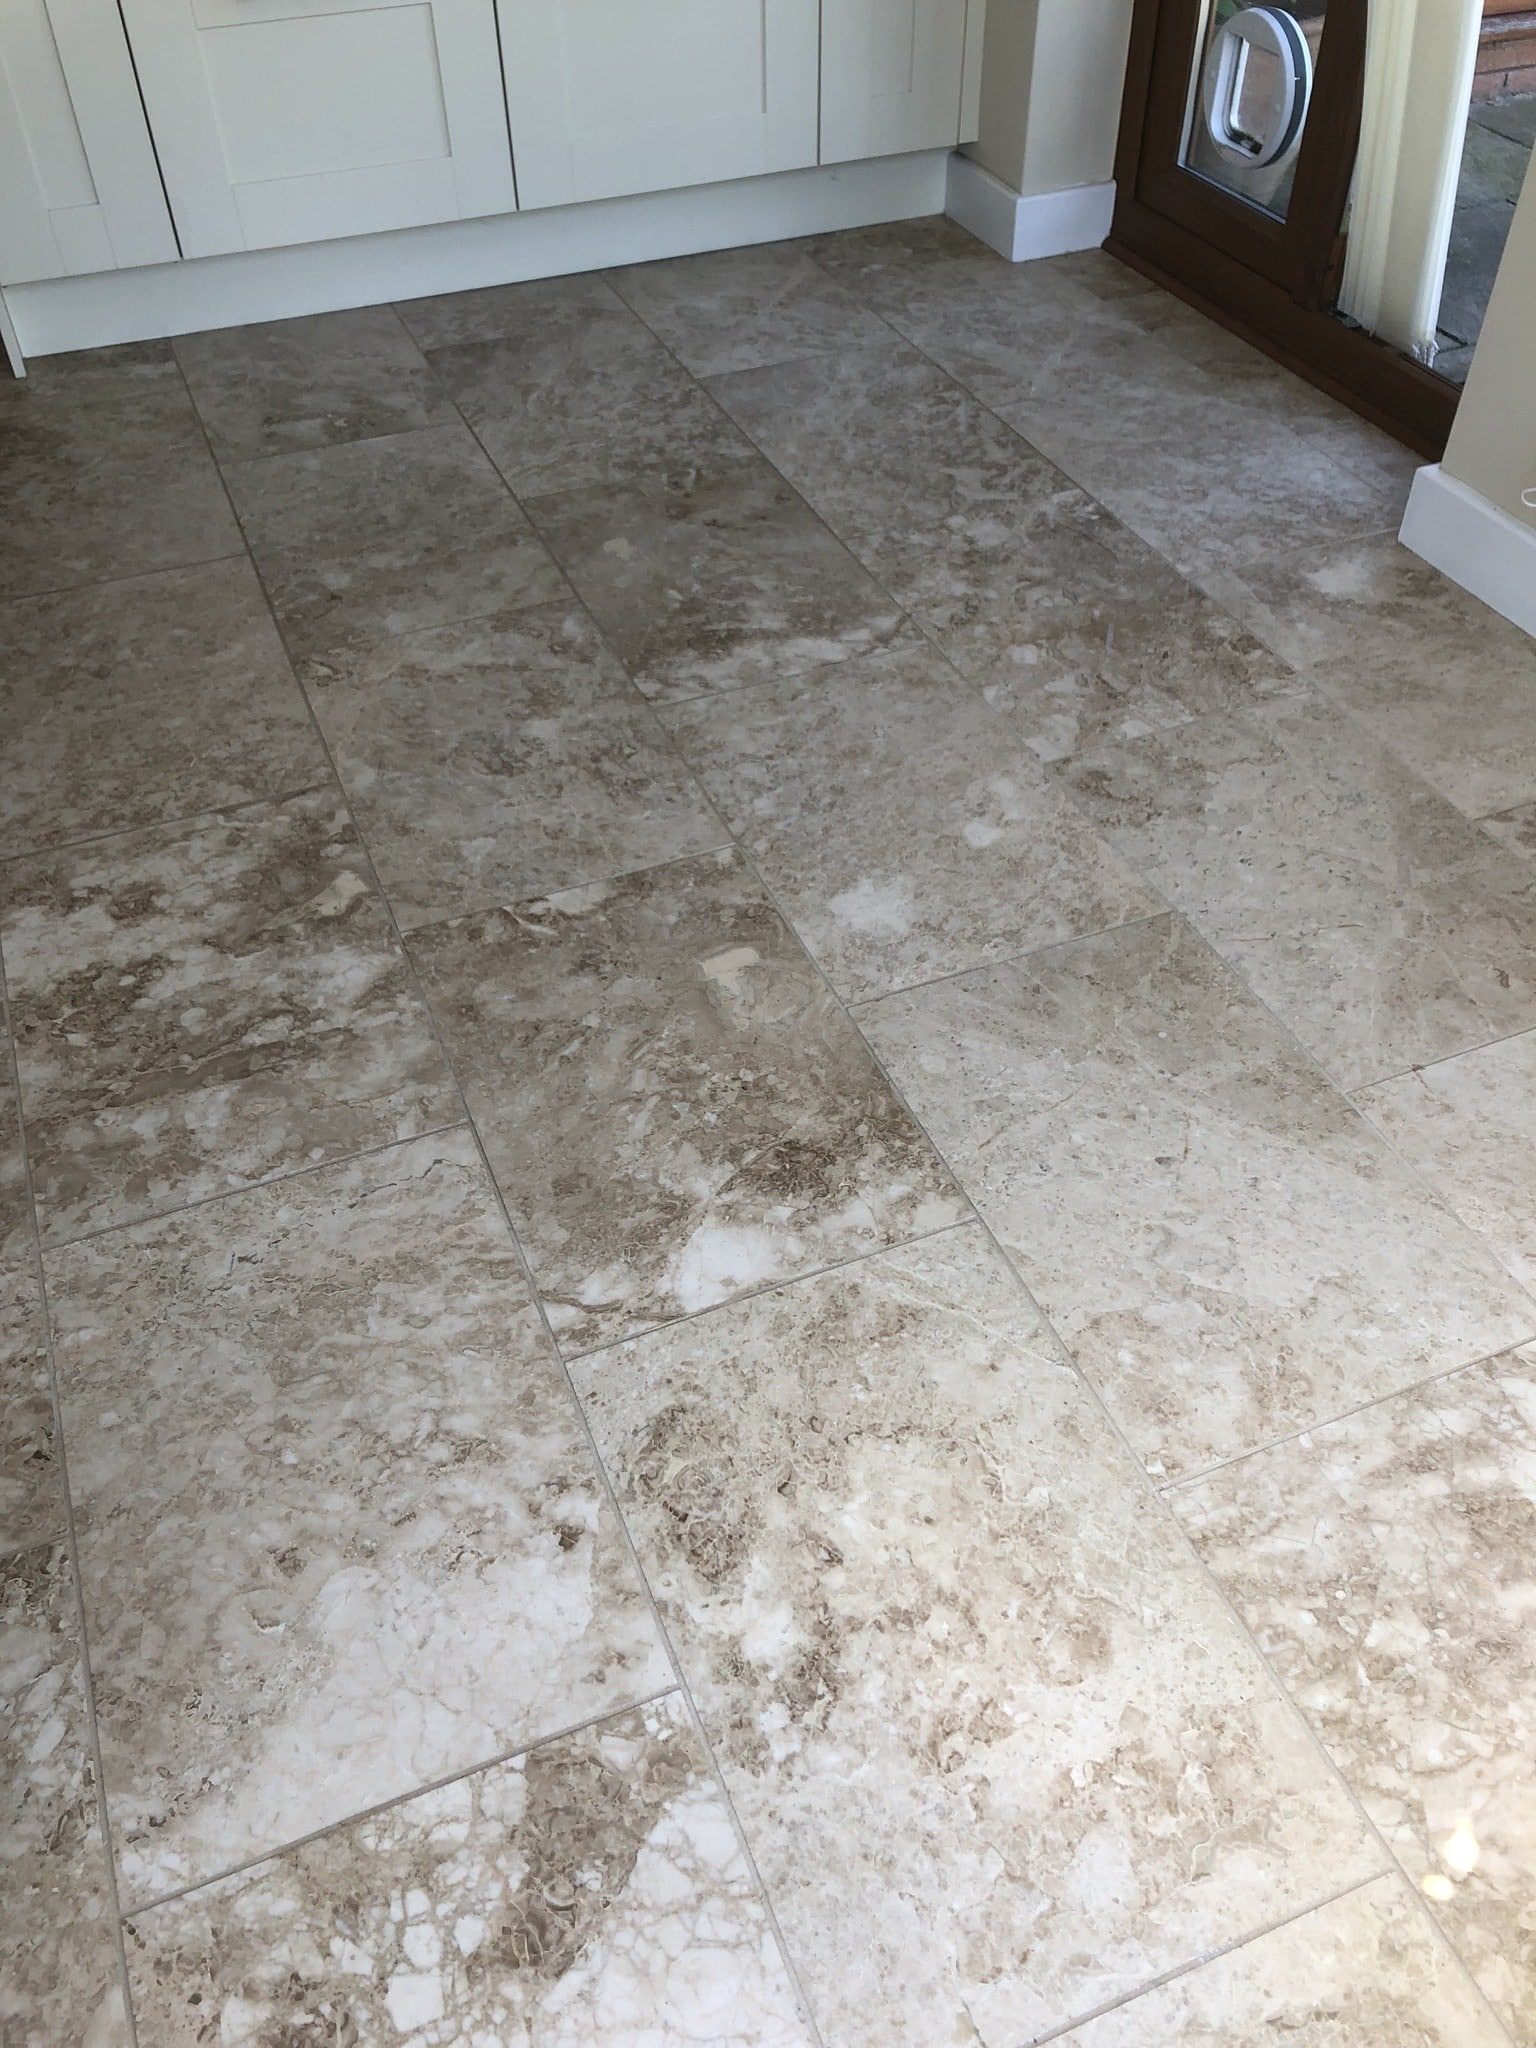 Marble Tiled Kitchen Floor Before Polishing Callowend